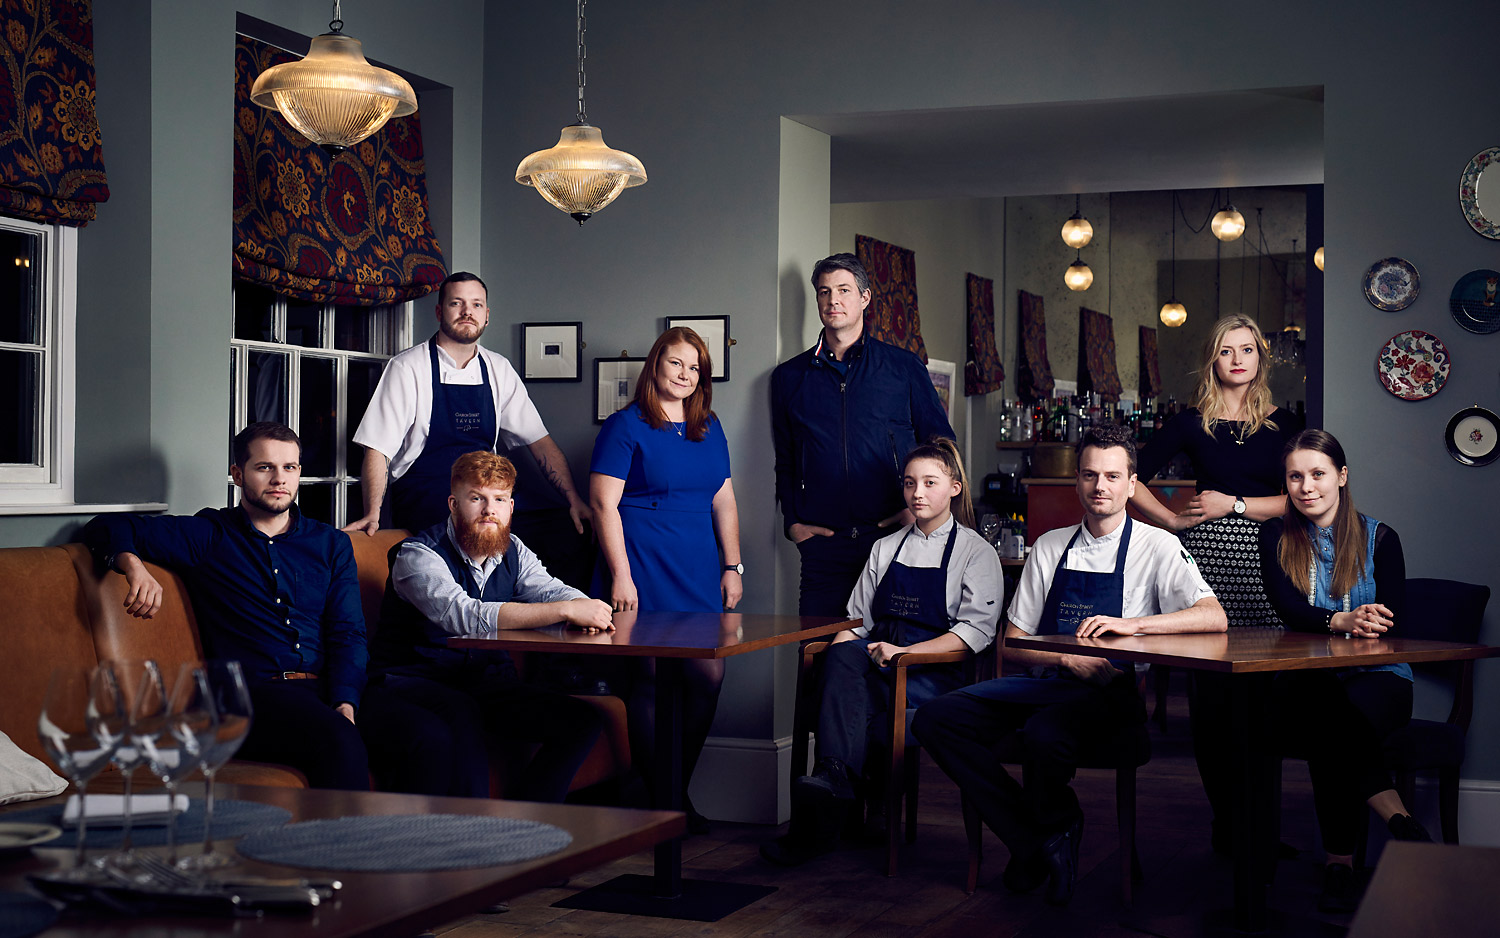 Dramatic team photo for the Church Street Tavern restaurant in Colchester by CliQQ Photography